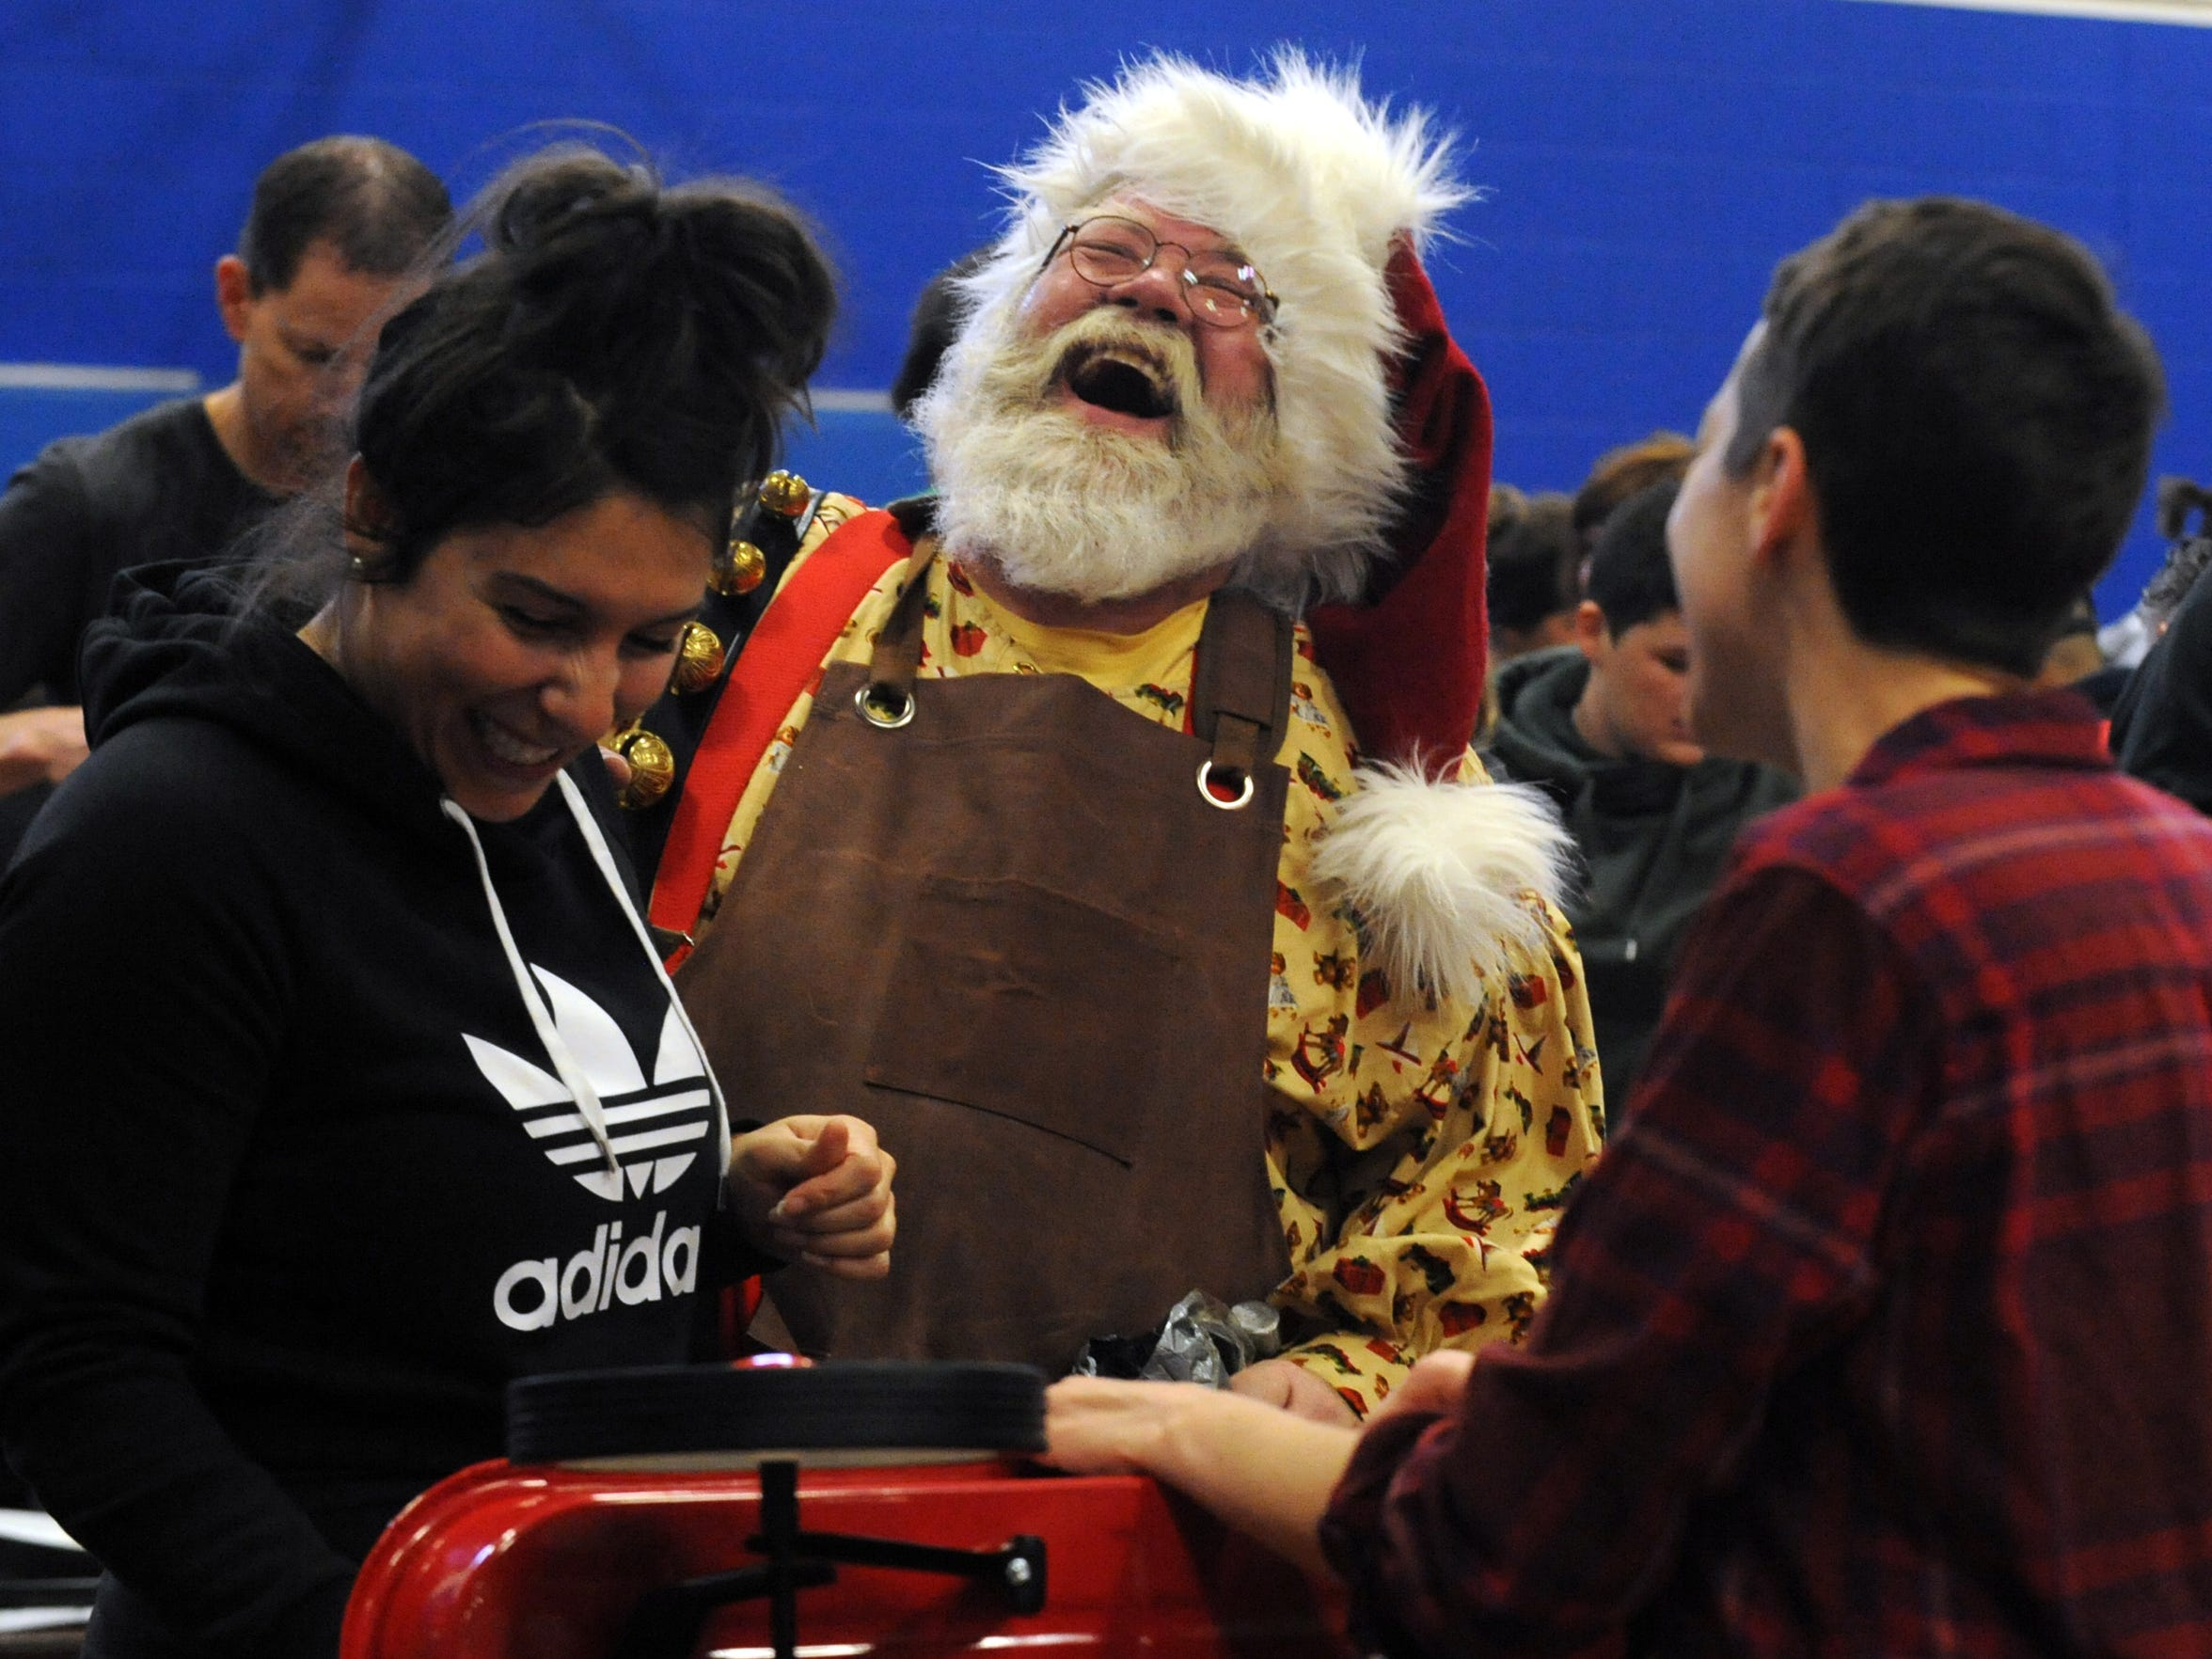 Tim Etienne laughs as he talks to volunteers Dec. 2, 2017, during the Wagons Ho Ho Ho build day at the Far East Community Recreation Center in Columbus. Tim was the charitable organization's official spokes Santa this year. The group is in its 10th year of building wagons and filling them with food for Christmas dinner to give to families in need throughout Central Ohio. More than 600 volunteers took part in this year's build day making 1,250 wagons. The group built 25 wagons its first year.